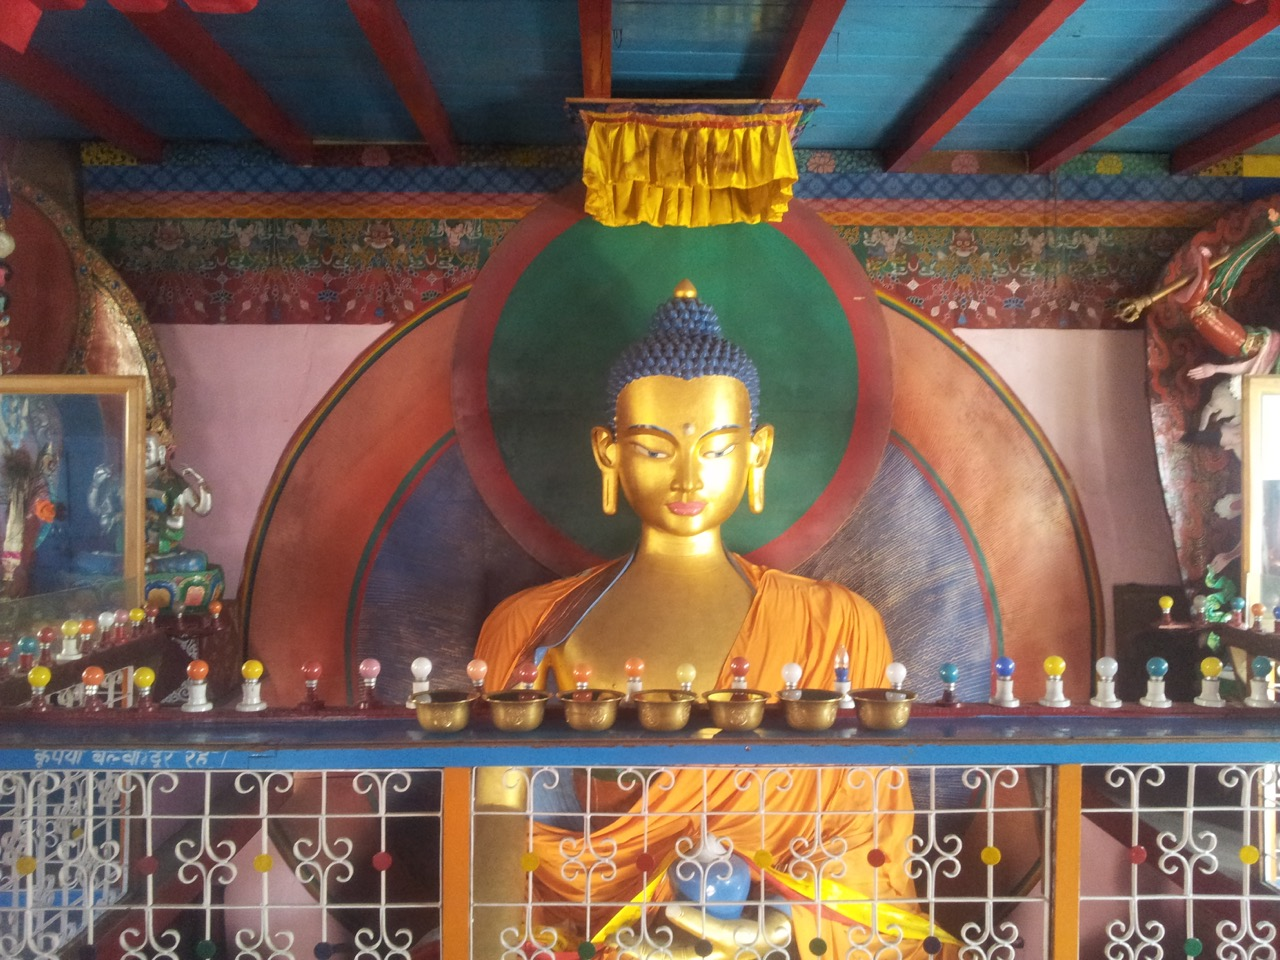 The Buddha idol inside the monastery.